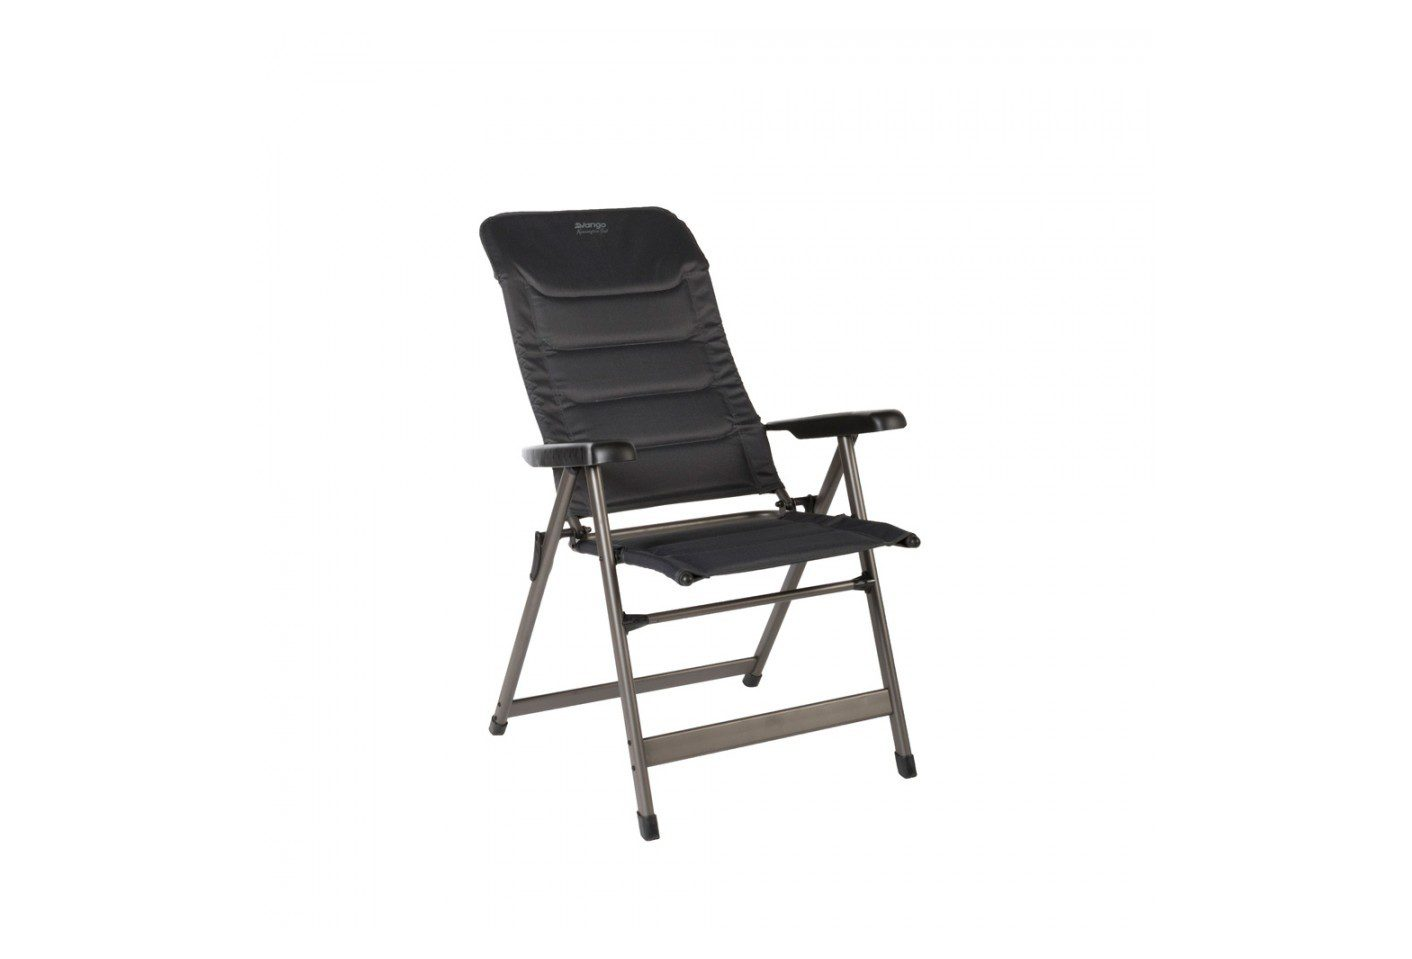 Vango Kensington Tall Aluminium Chair - Excalibur